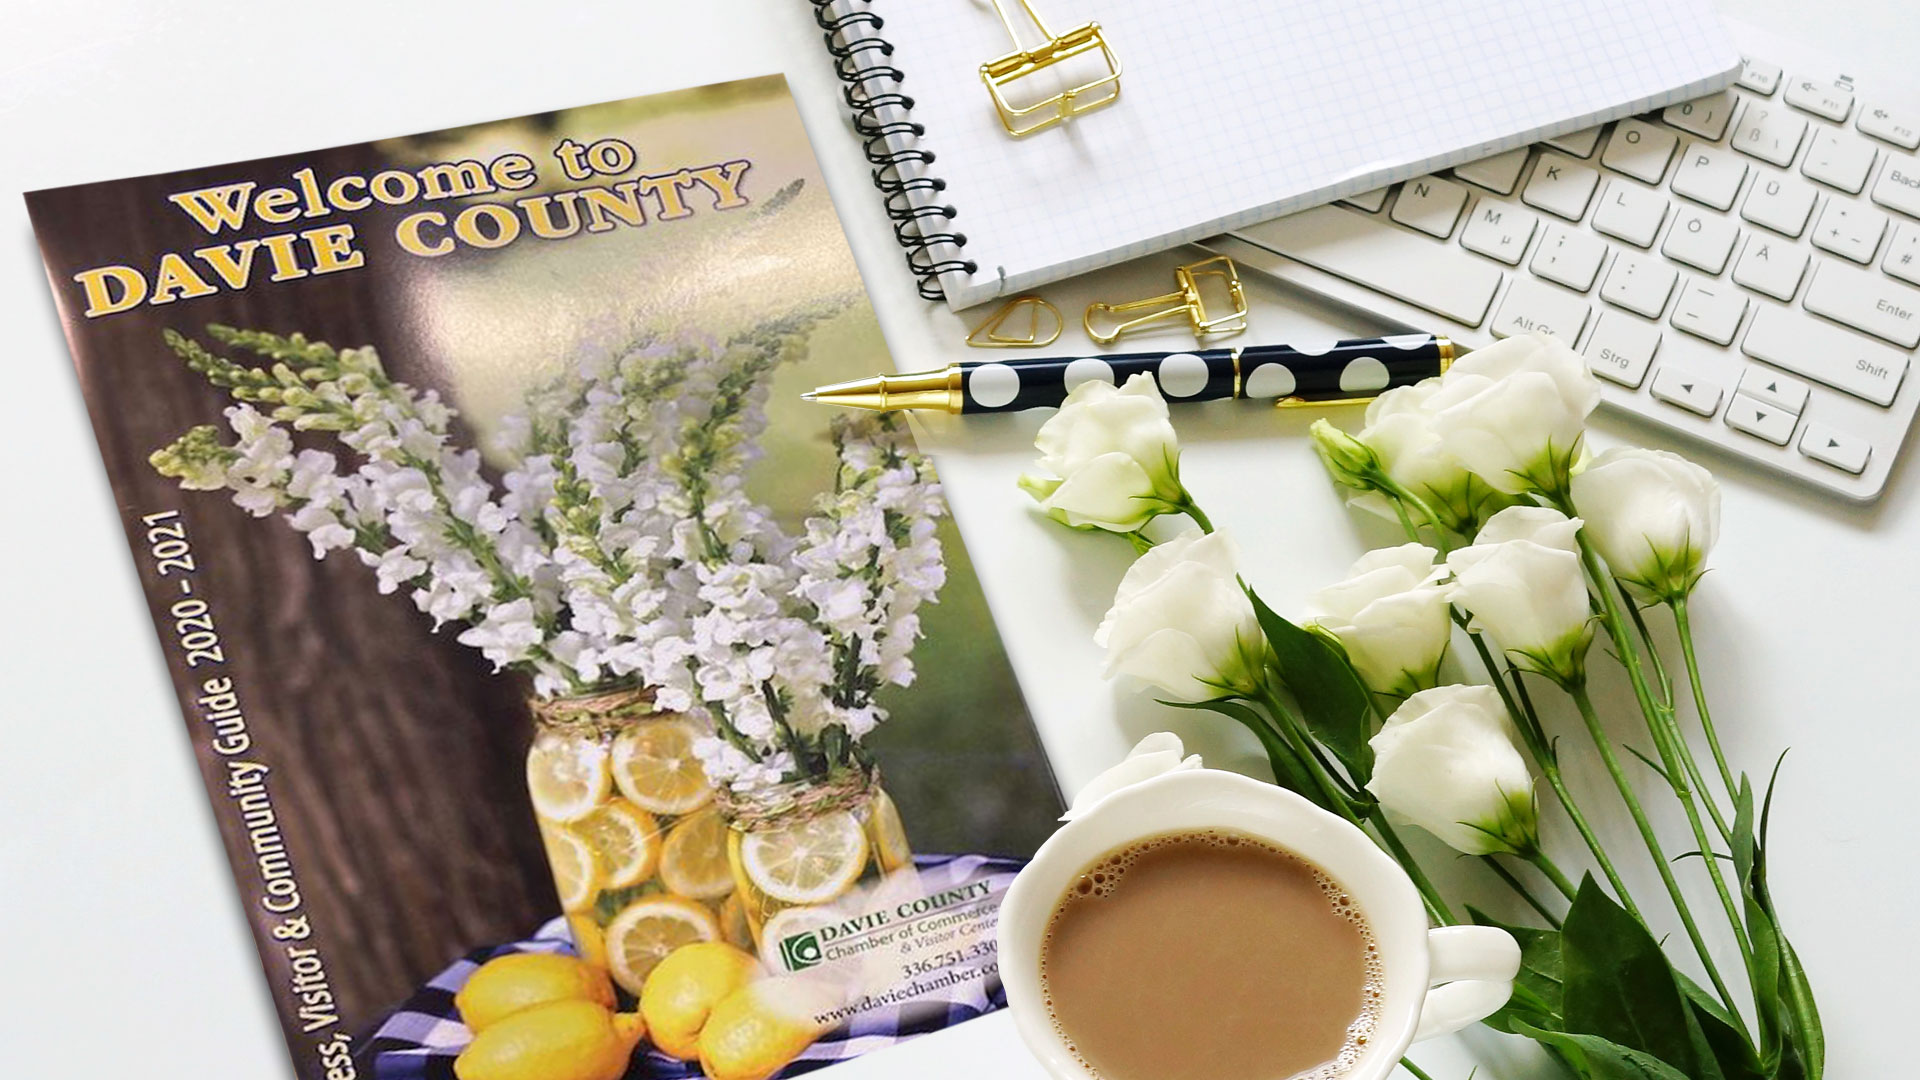 Davie County Chamber Business, Visitor and Community Guide 2020-21